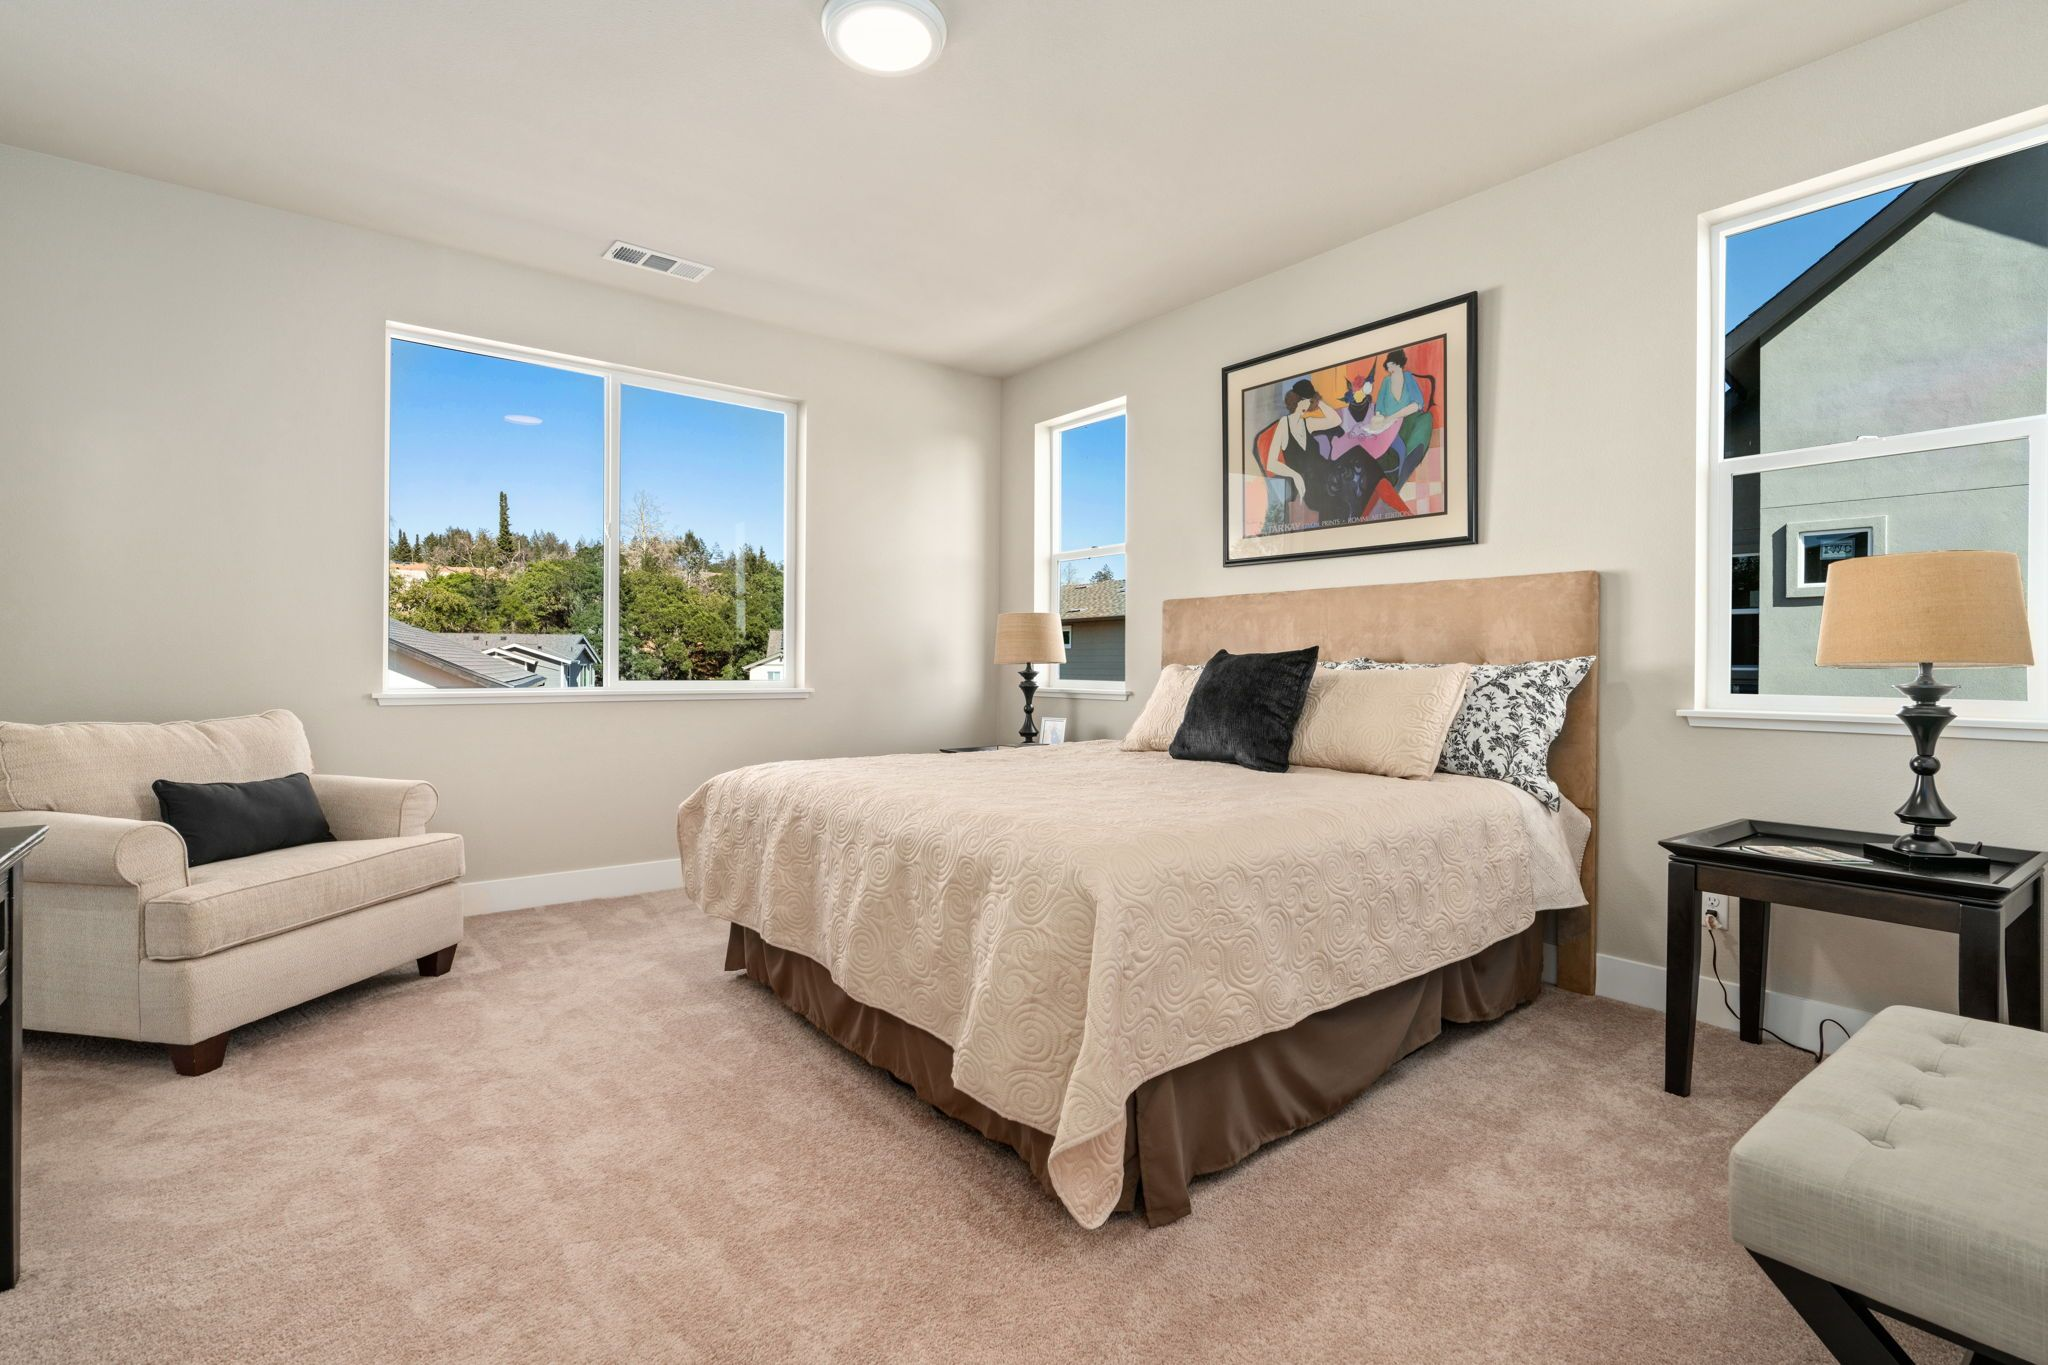 Bedroom featured in the Plan 32 By Christopherson Builders in Santa Rosa, CA